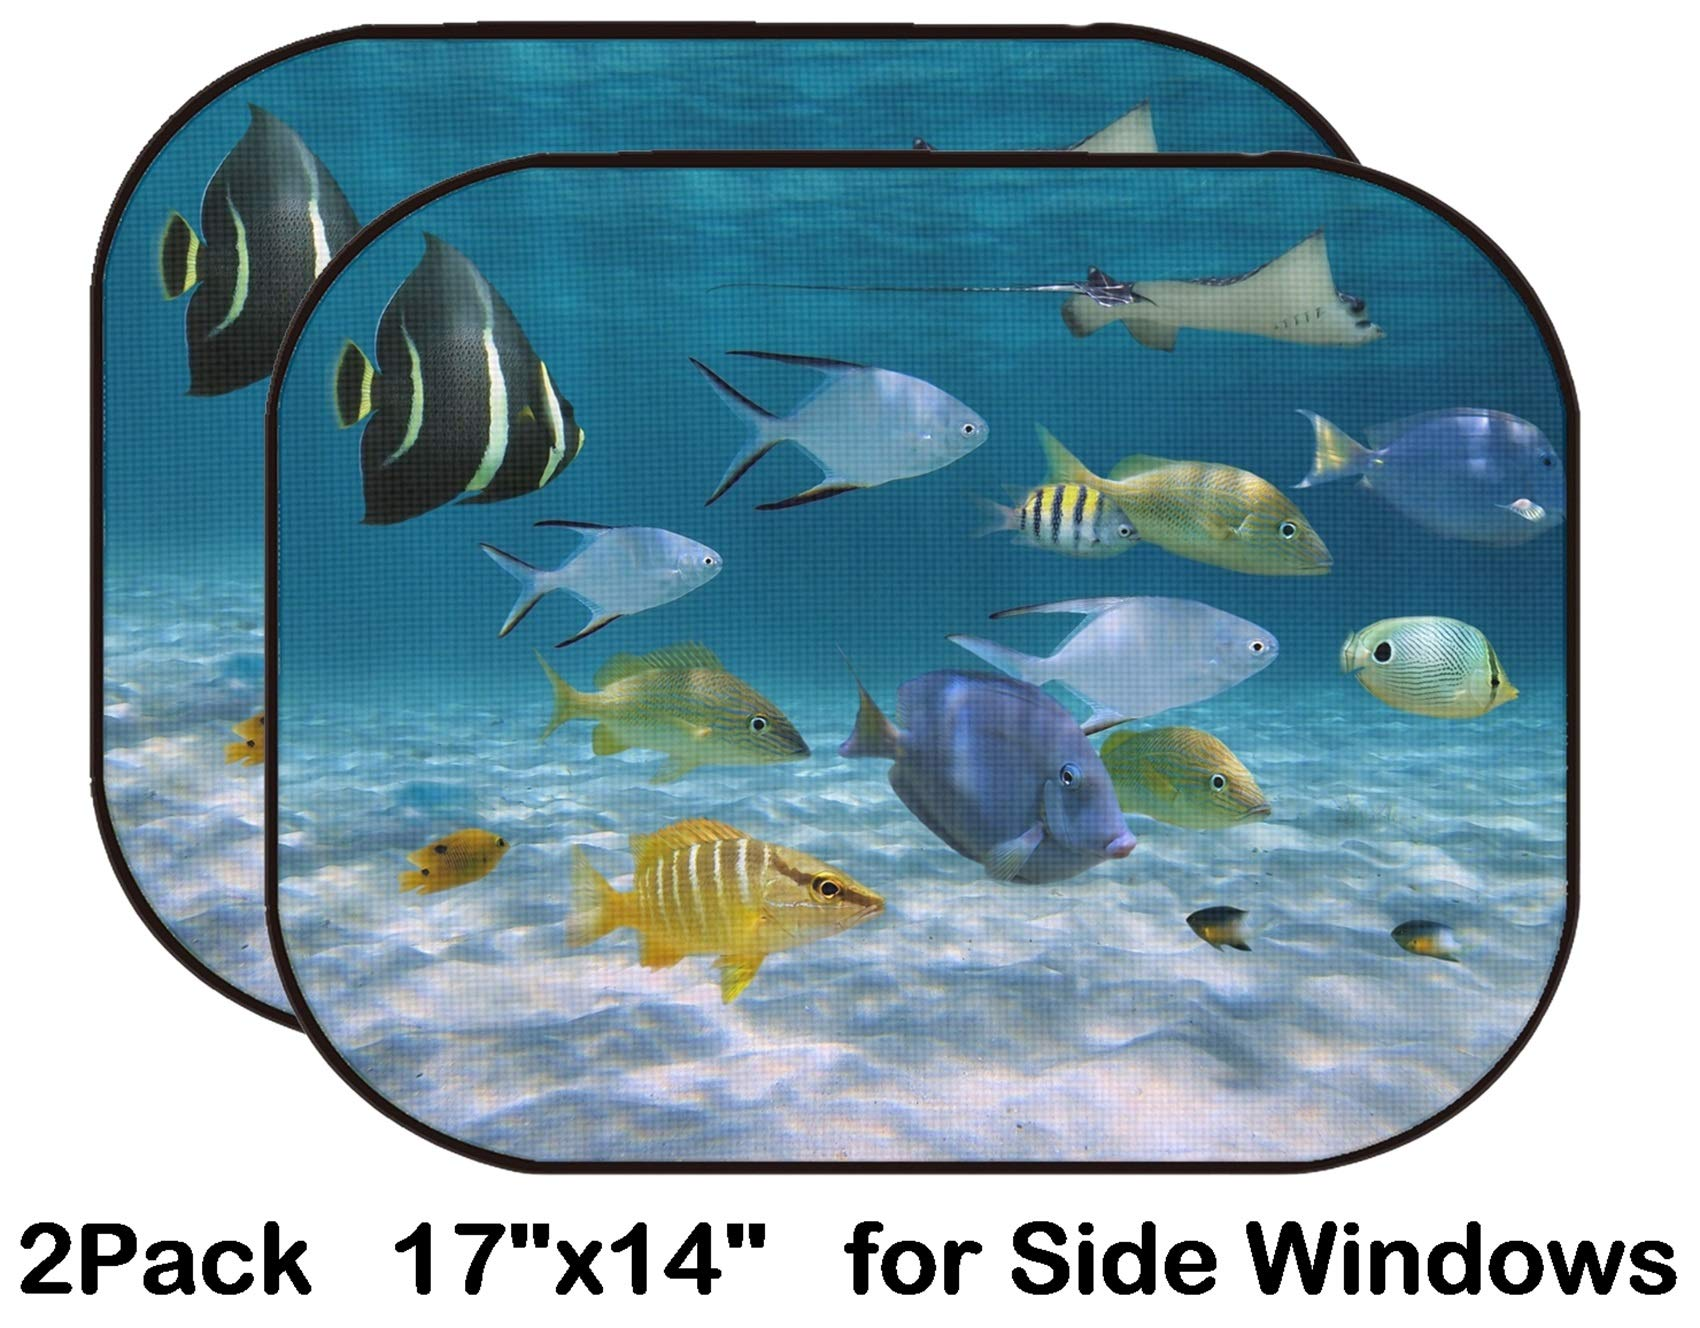 Liili Car Sun Shade for Side Rear Window Blocks UV Ray Sunlight Heat - Protect Baby and Pet - 2 Pack Image ID: 15641385 School of Fish with Ripples of Sunlight Reflected on The Sandy